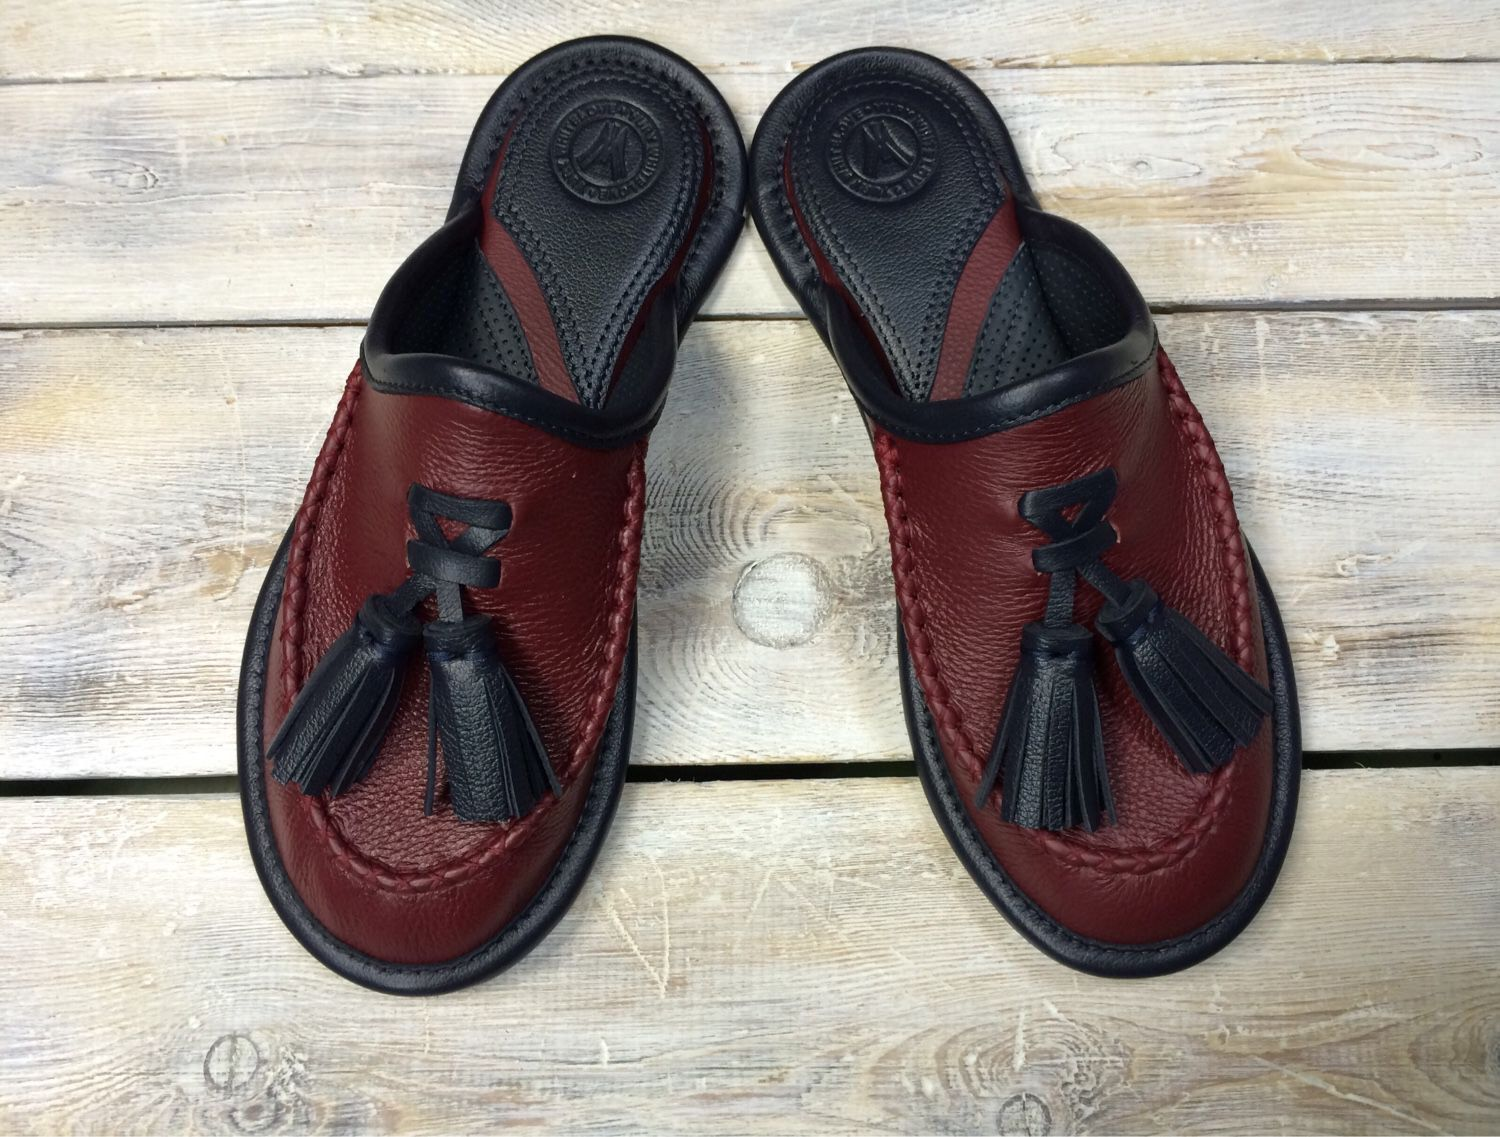 Mens Bedroom Slippers Wide 17 Best Ideas About Mens Leather Slippers On Pinterest Men